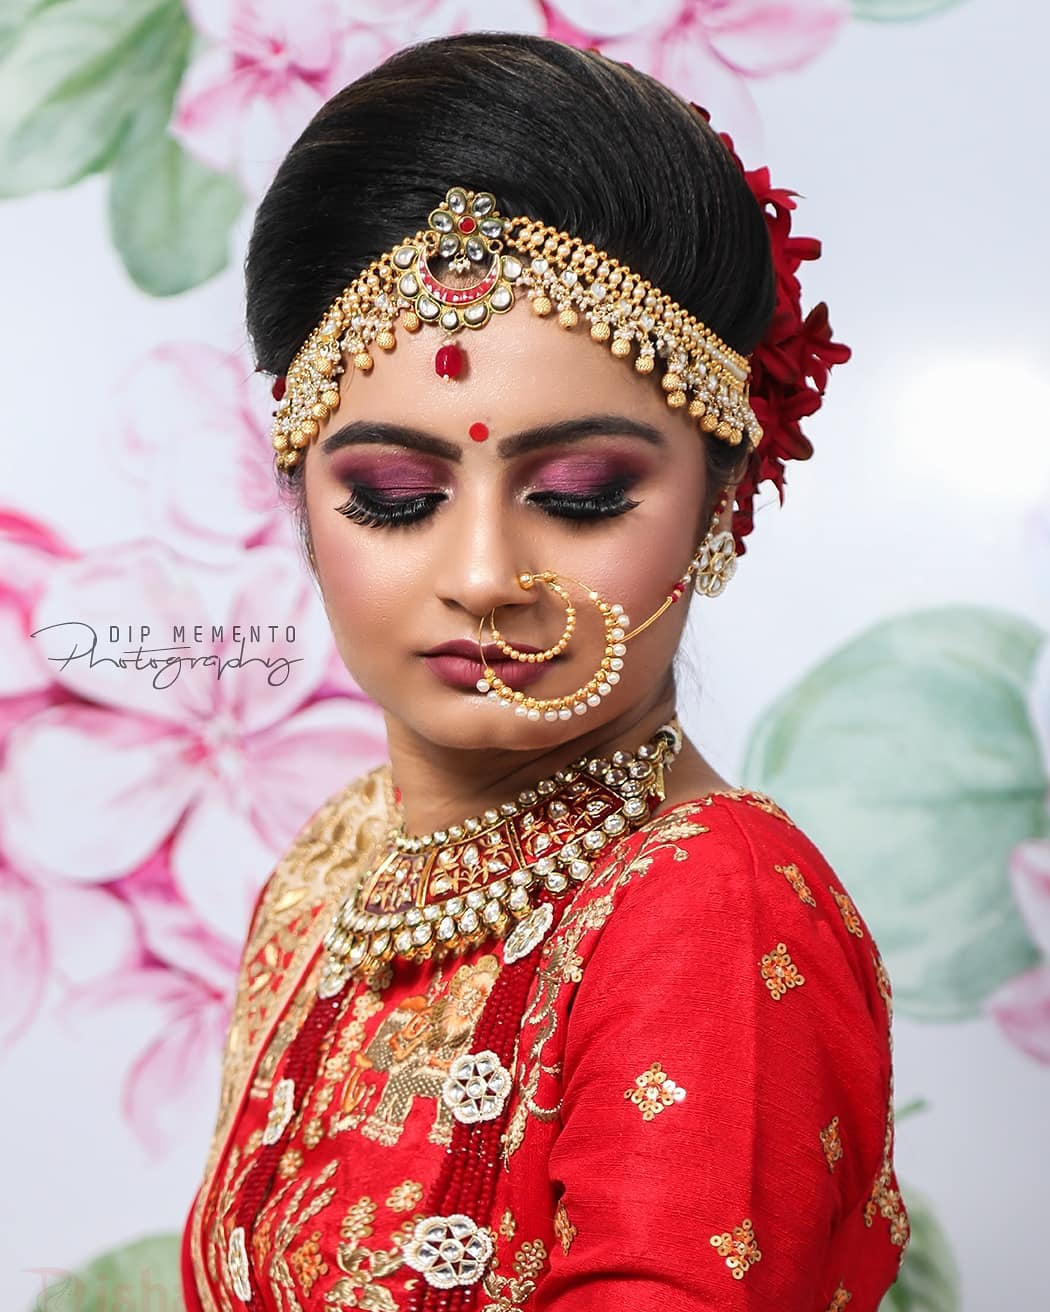 Nothing feels better when Bride look and feel beautiful on their dday.. . . ▪︎ captured by @dip_memento_photography ▪︎ Makeup by @dishabeautysaloonacademynikol ▪︎ InFrame Binita  #brides #sisterbrides #bridetobe #coolbrides #bigfatindianwedding #bridemakeup #indianwedding #photography #weddings #indianwedding #dipmementophotography #9924227745 #loveformakeup #makeuplove #makeupartist #makeup #ahmedabad #candidportraits #indianbride #indianfashionblogger #sisterstogether #sisterfriends #brides #funbrides • @wedzo.in @indianstreetfashion @weddingz.in @indian_wedding_bliss @dulhaanddulhan @thebridesofindia @indianweddings @weddingdream @indianweddingbuzz @shaadisaga @zo_wed @desiclassybrides @weddingwireindia @indiagramwedding @shaadisaga @indian__wedding @thebridesofindia @weddingsutra @wedmegood @bridalaffairind @theweddingbrigade @weddingplz @weddingfables @indian_wedding_inspiration @eventilaindia @_punjabi_weddings